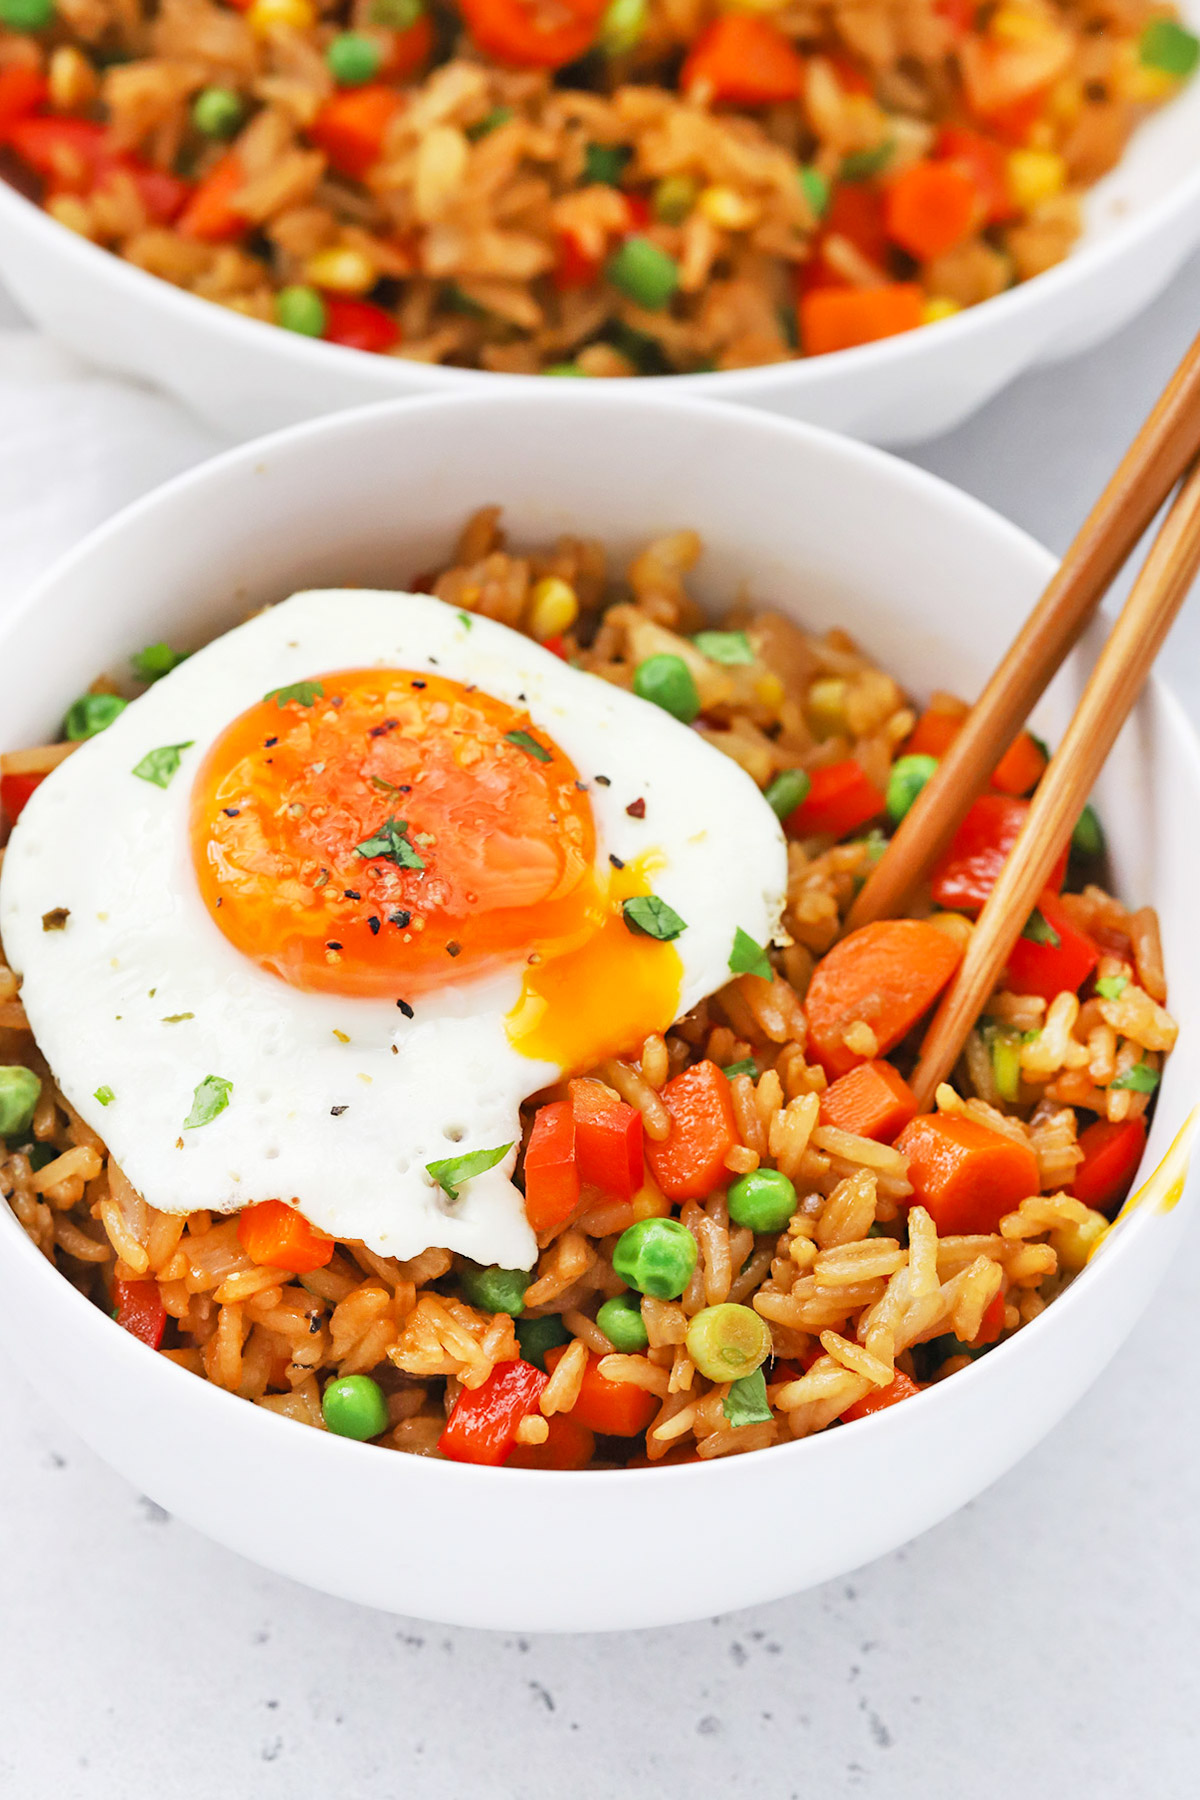 Front view of two bowls of healthy vegetarian fried rice topped with a sunny-side up egg